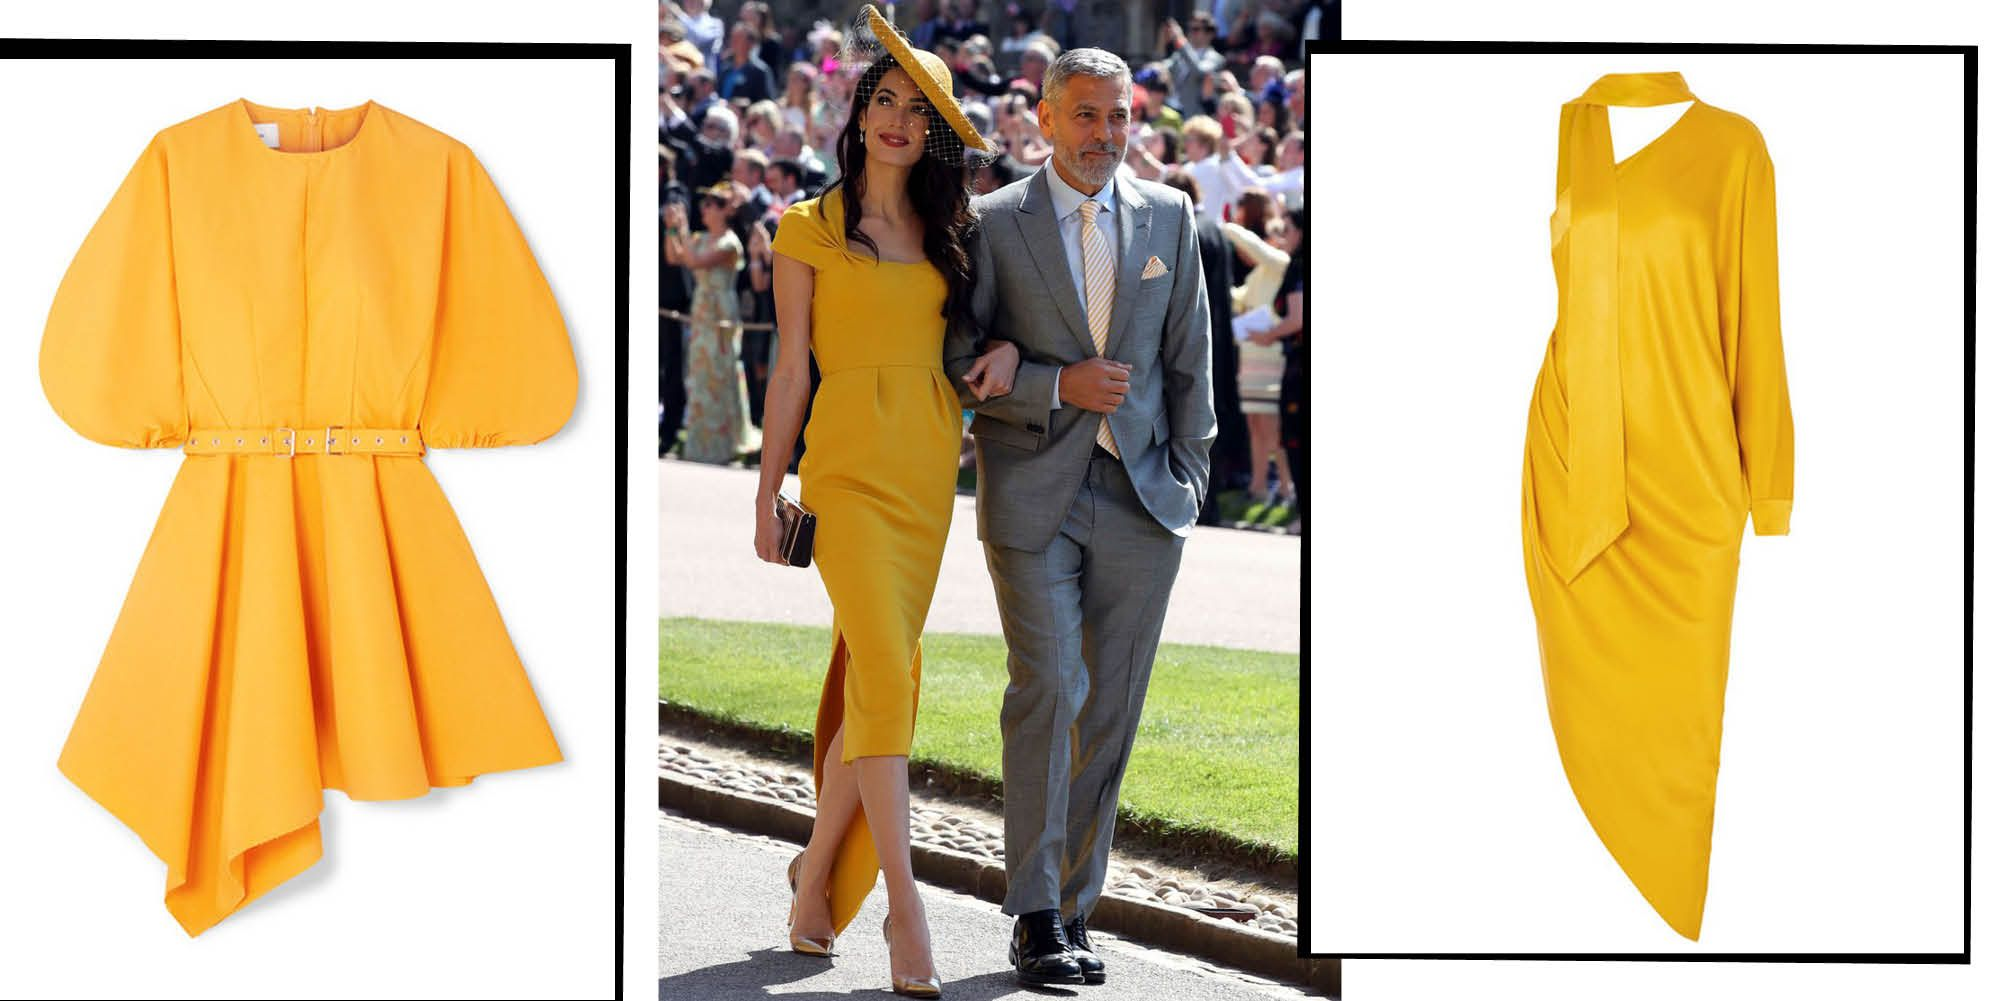 67a03eb5261 Sun-Coloured Wedding Guests Dresses You Need To Channel Your Inner Amal  Clooney